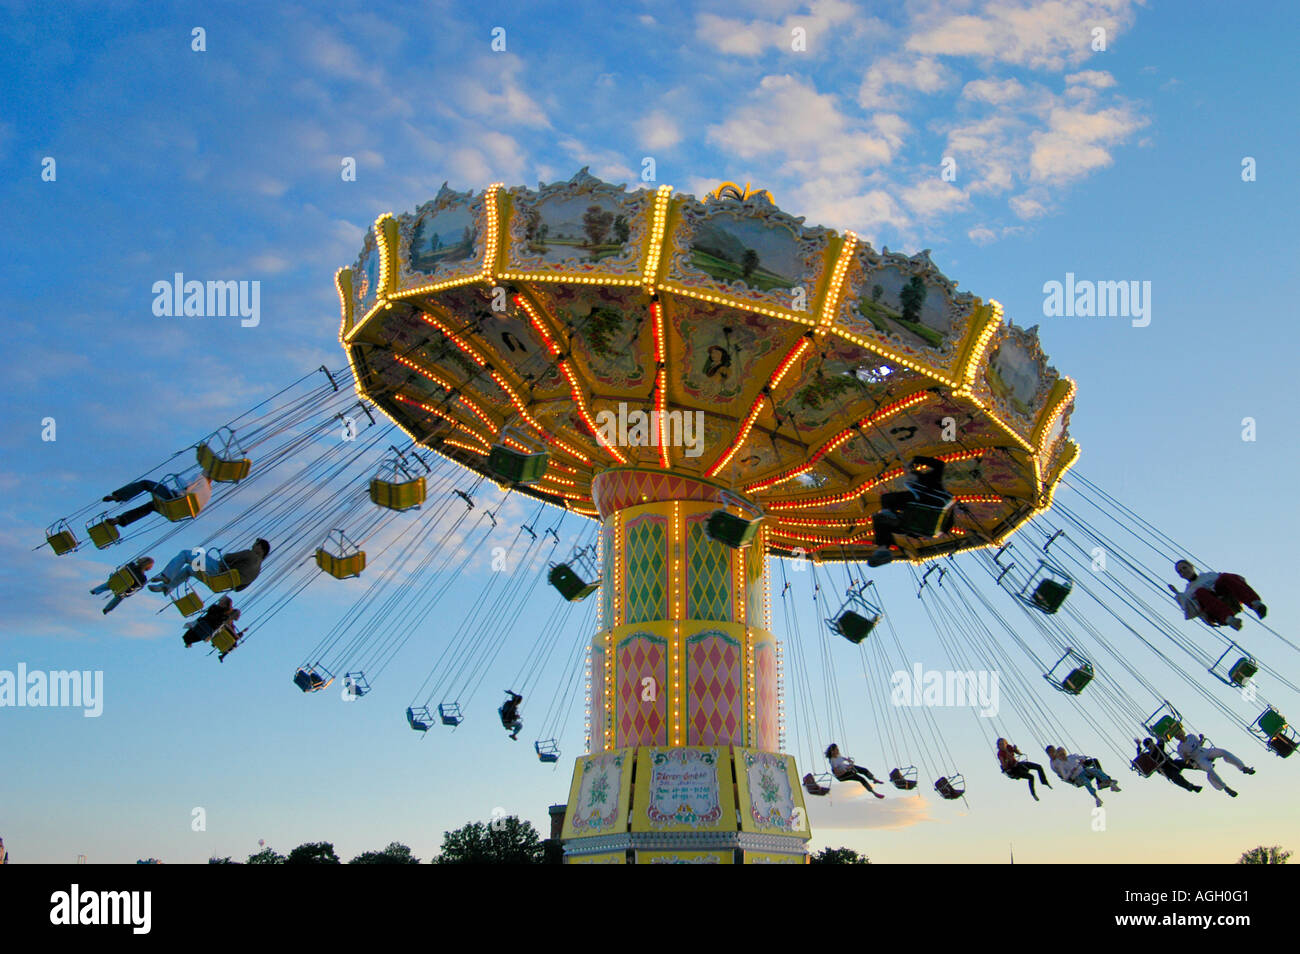 attraction/carousel in amusement park, Gröna Lund, Stockholm, Sweden - Stock Image